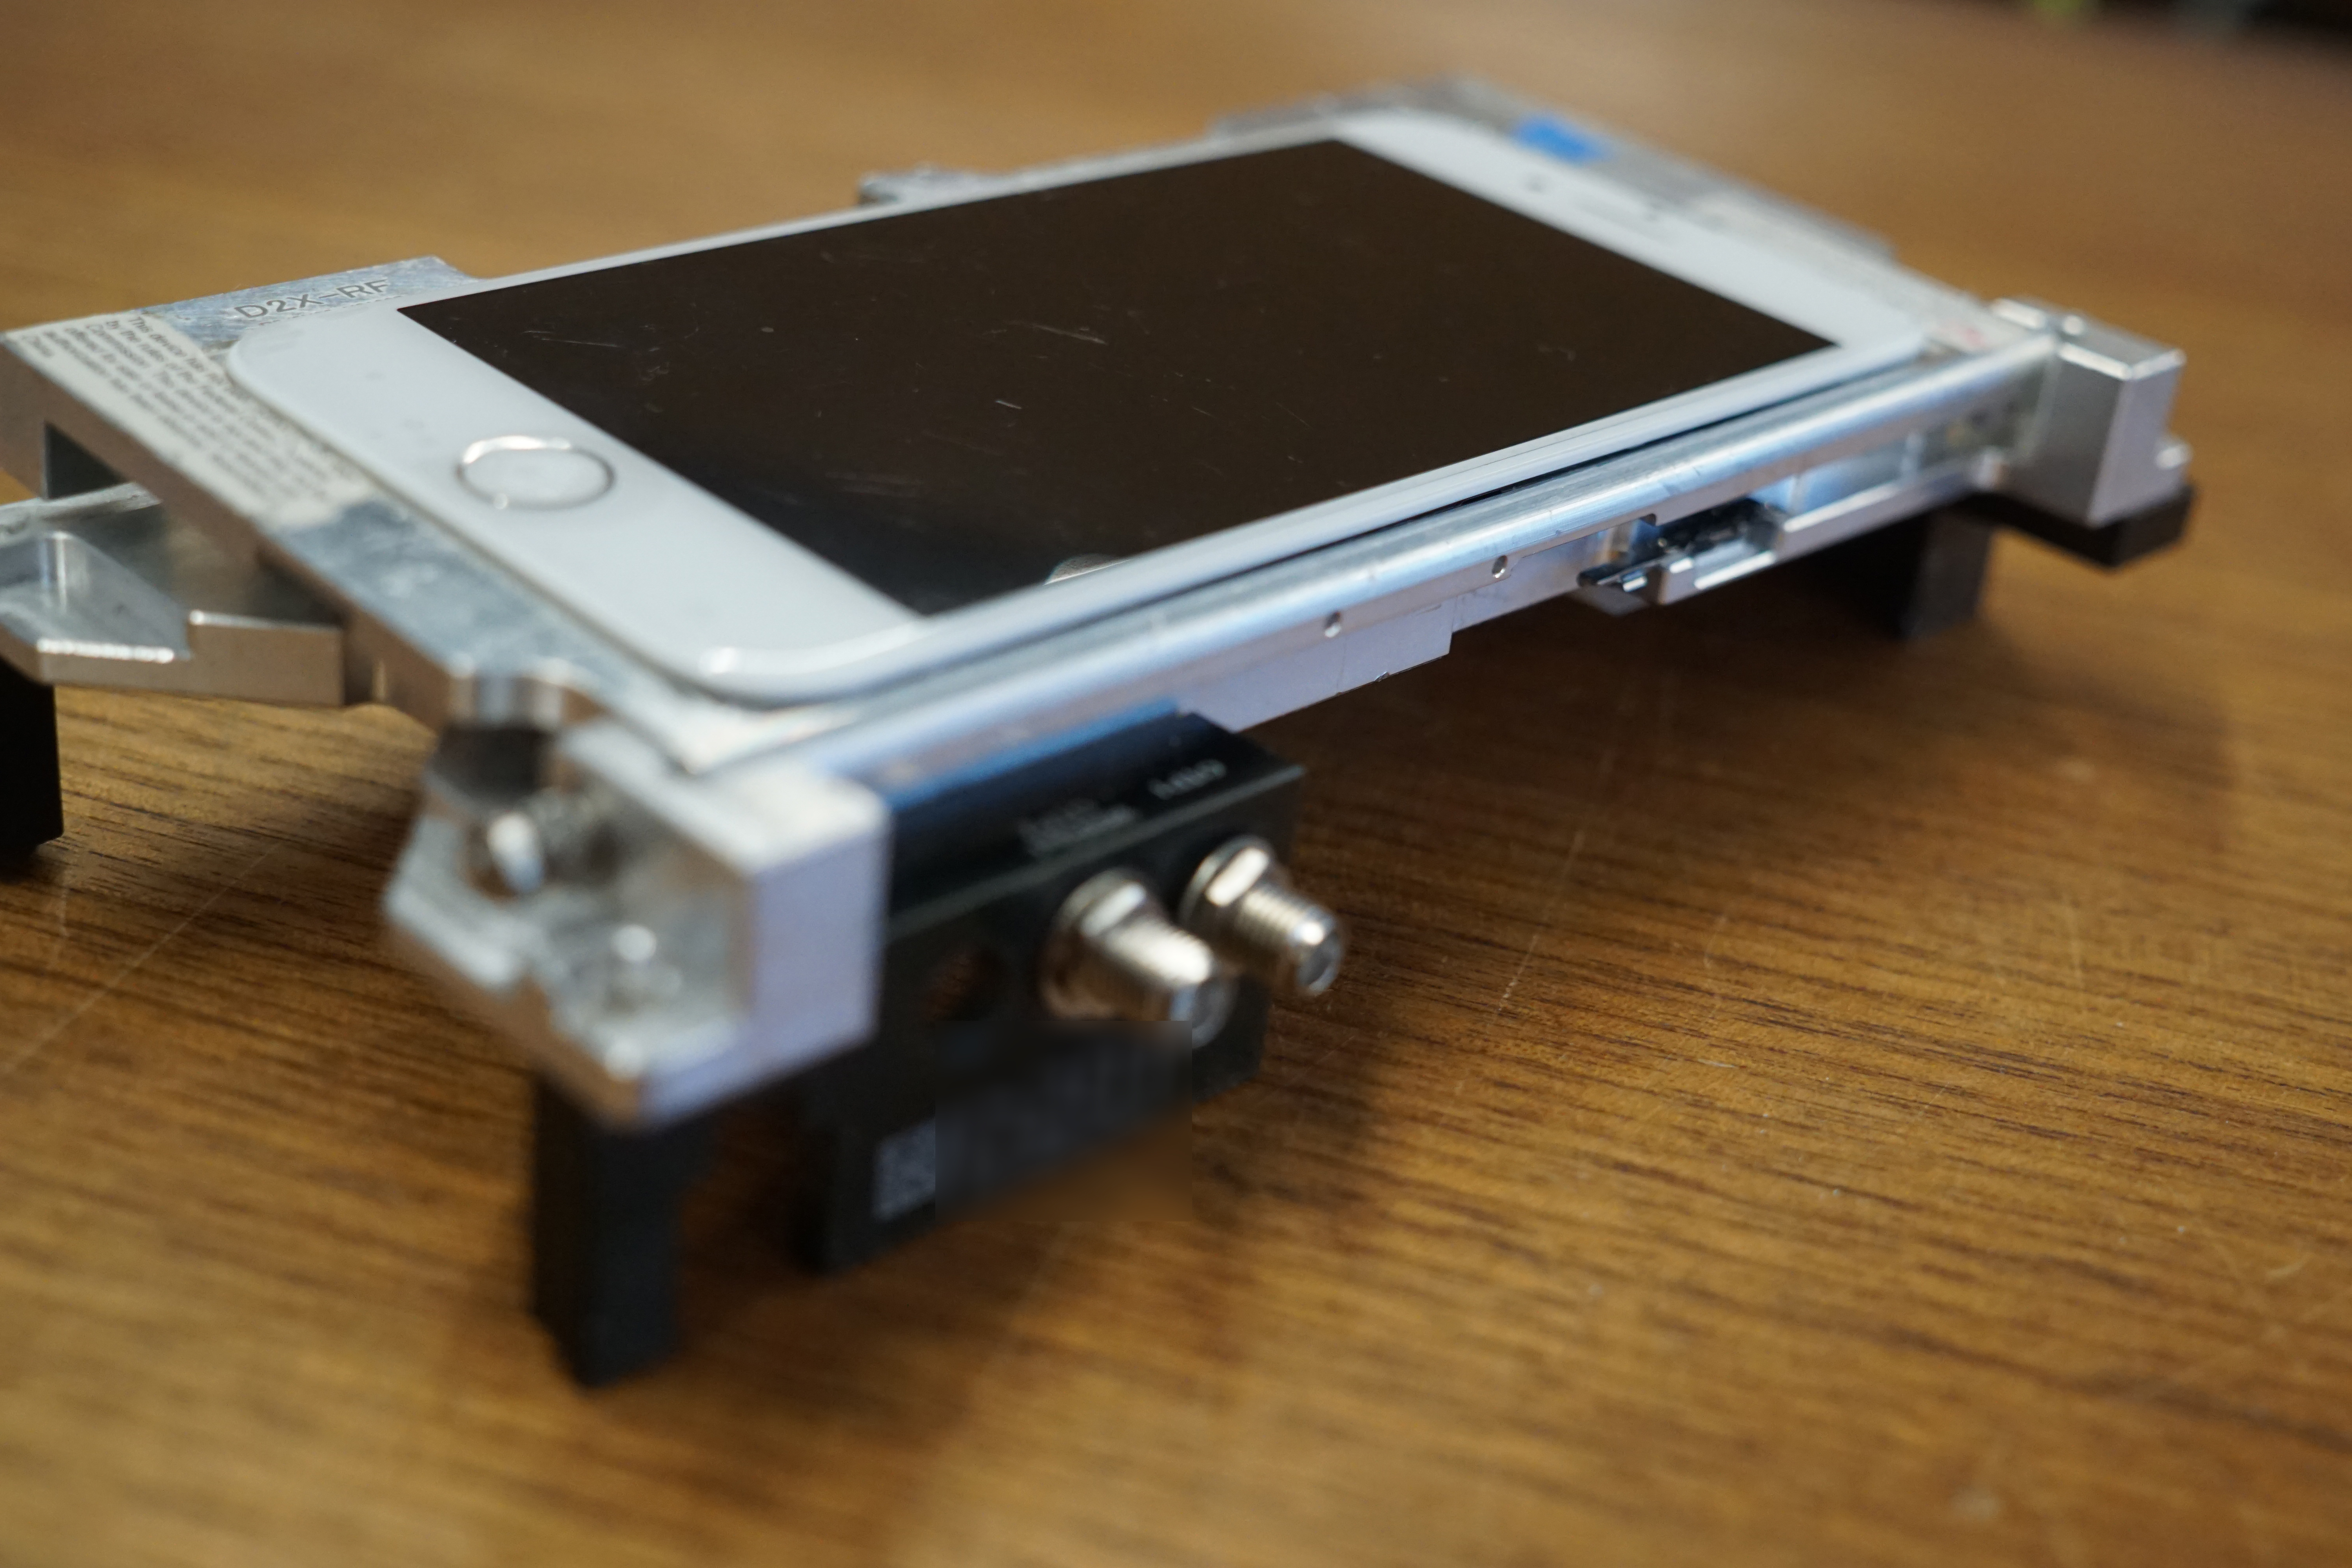 An iPhone dev-fused device